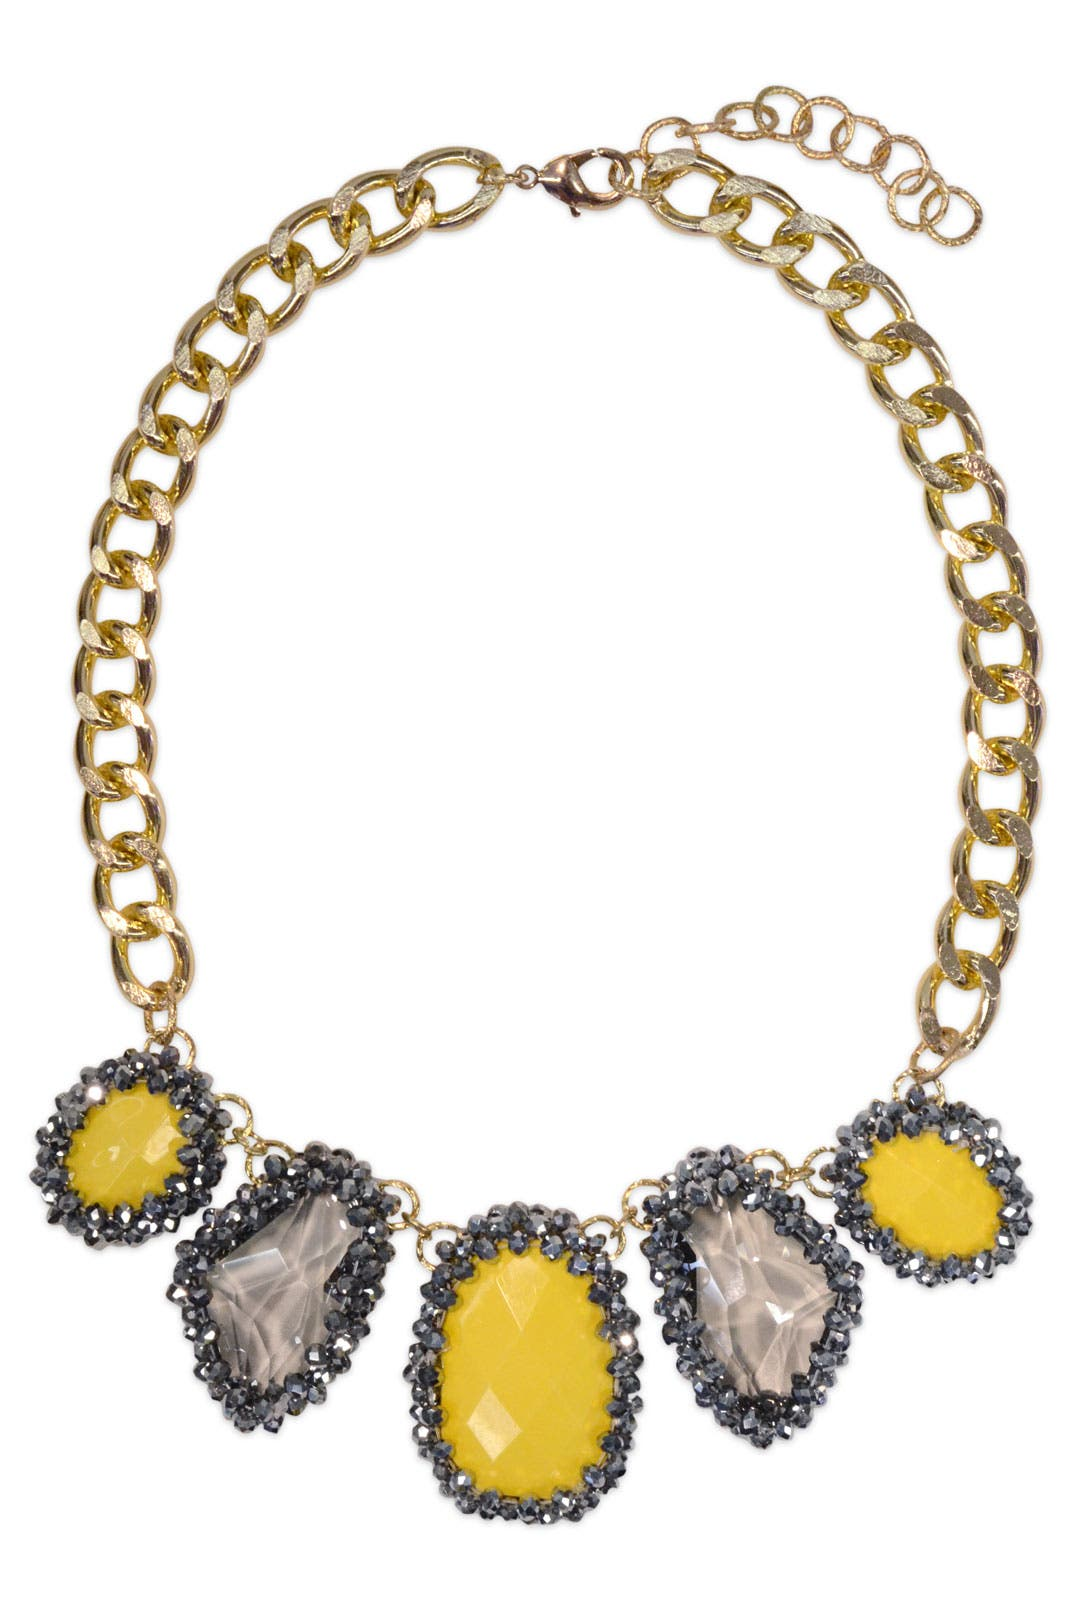 Yellow Glitz Collar by Cinder & Charm